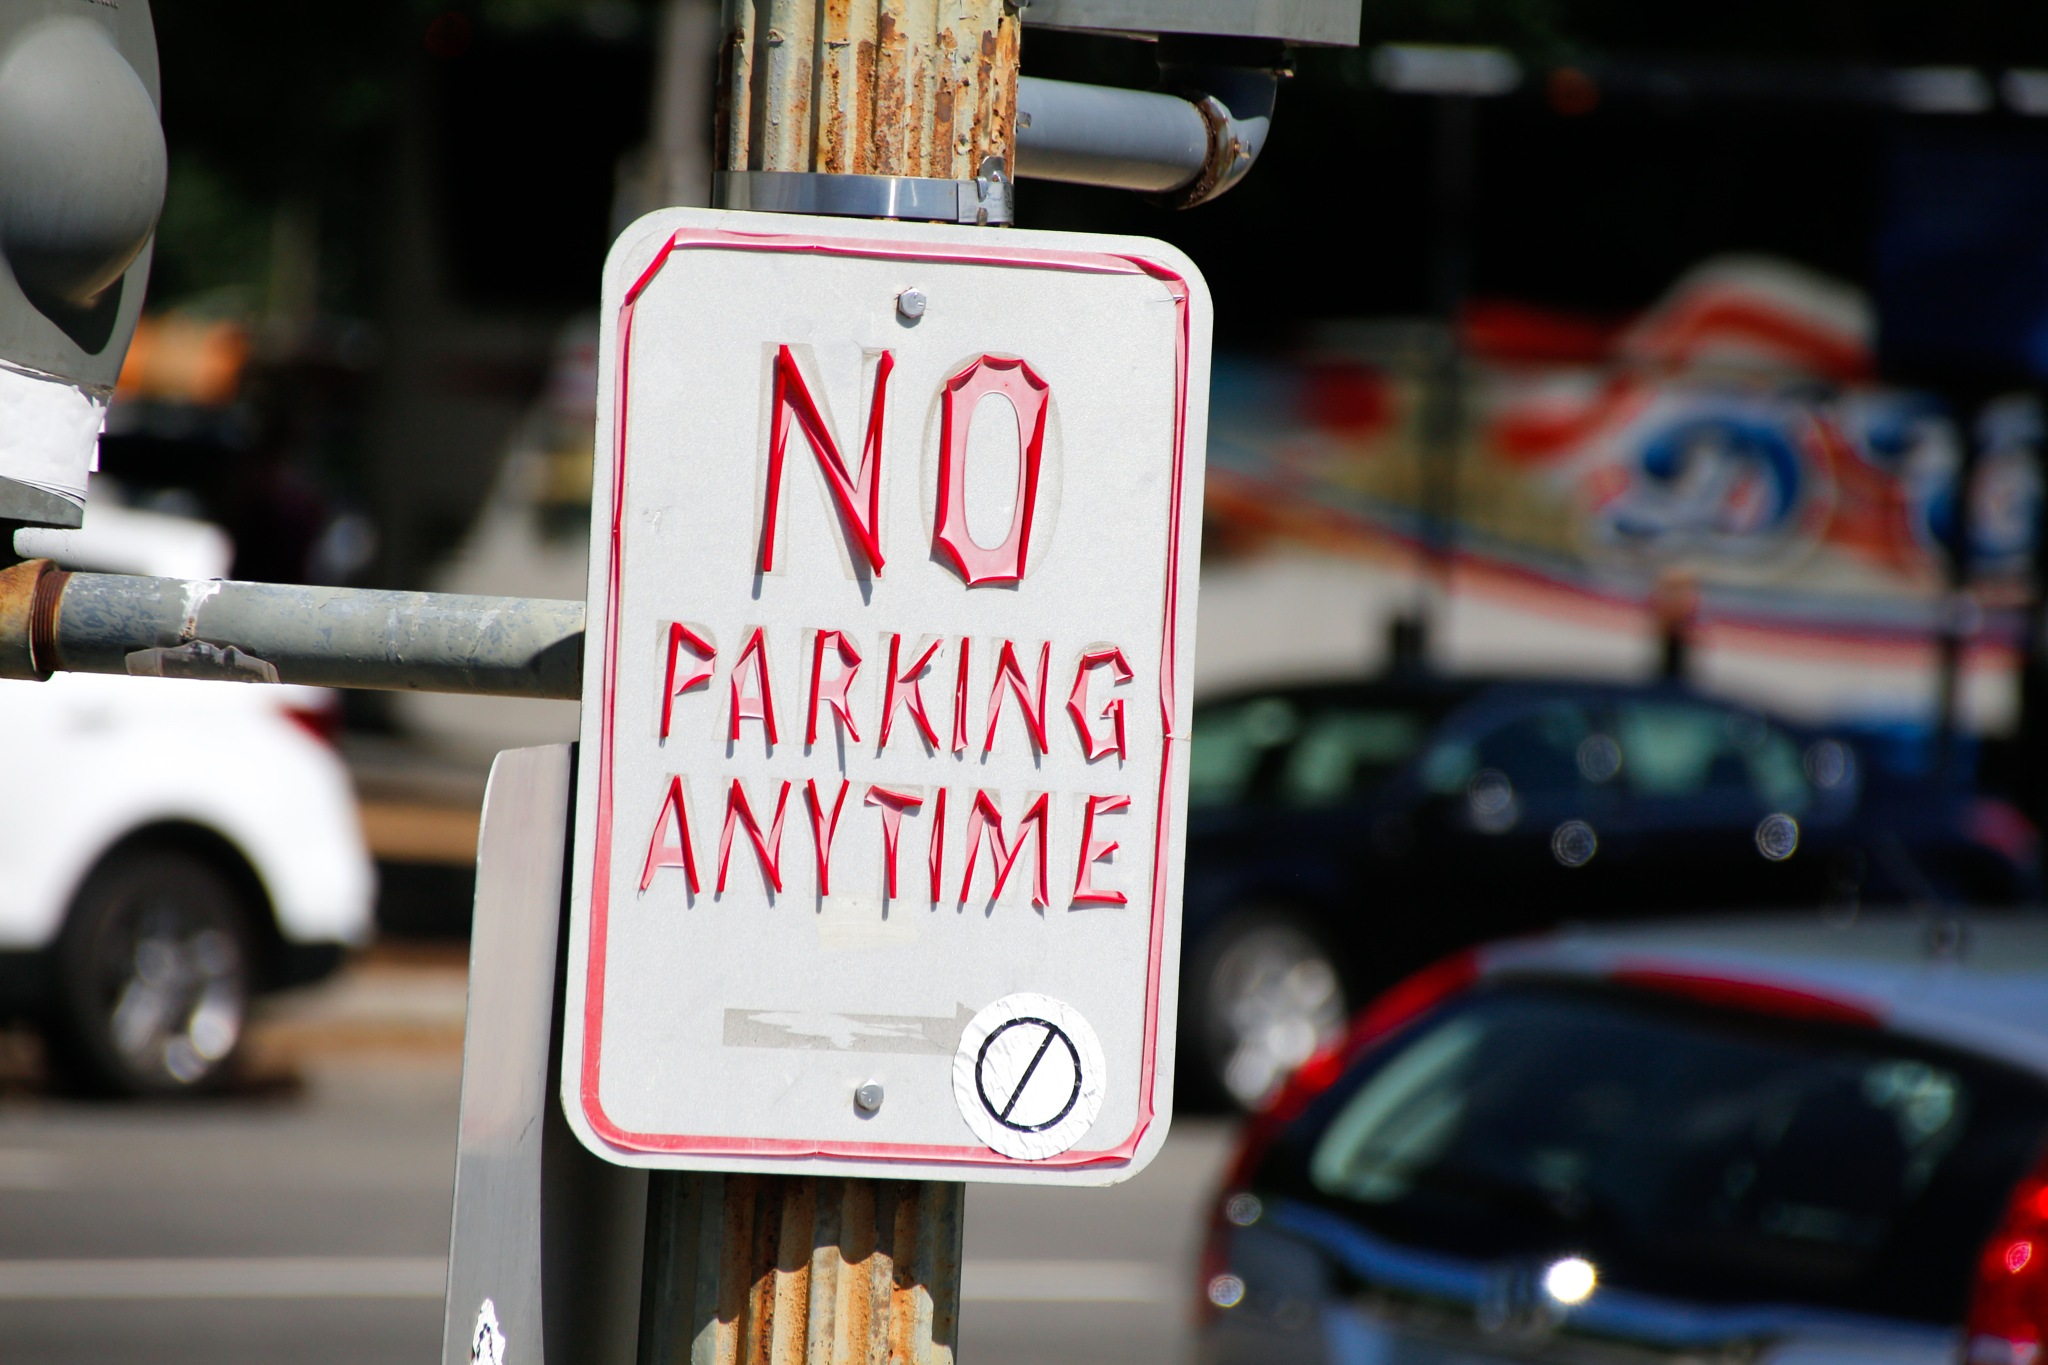 No Parking Anytime by Brian Dill